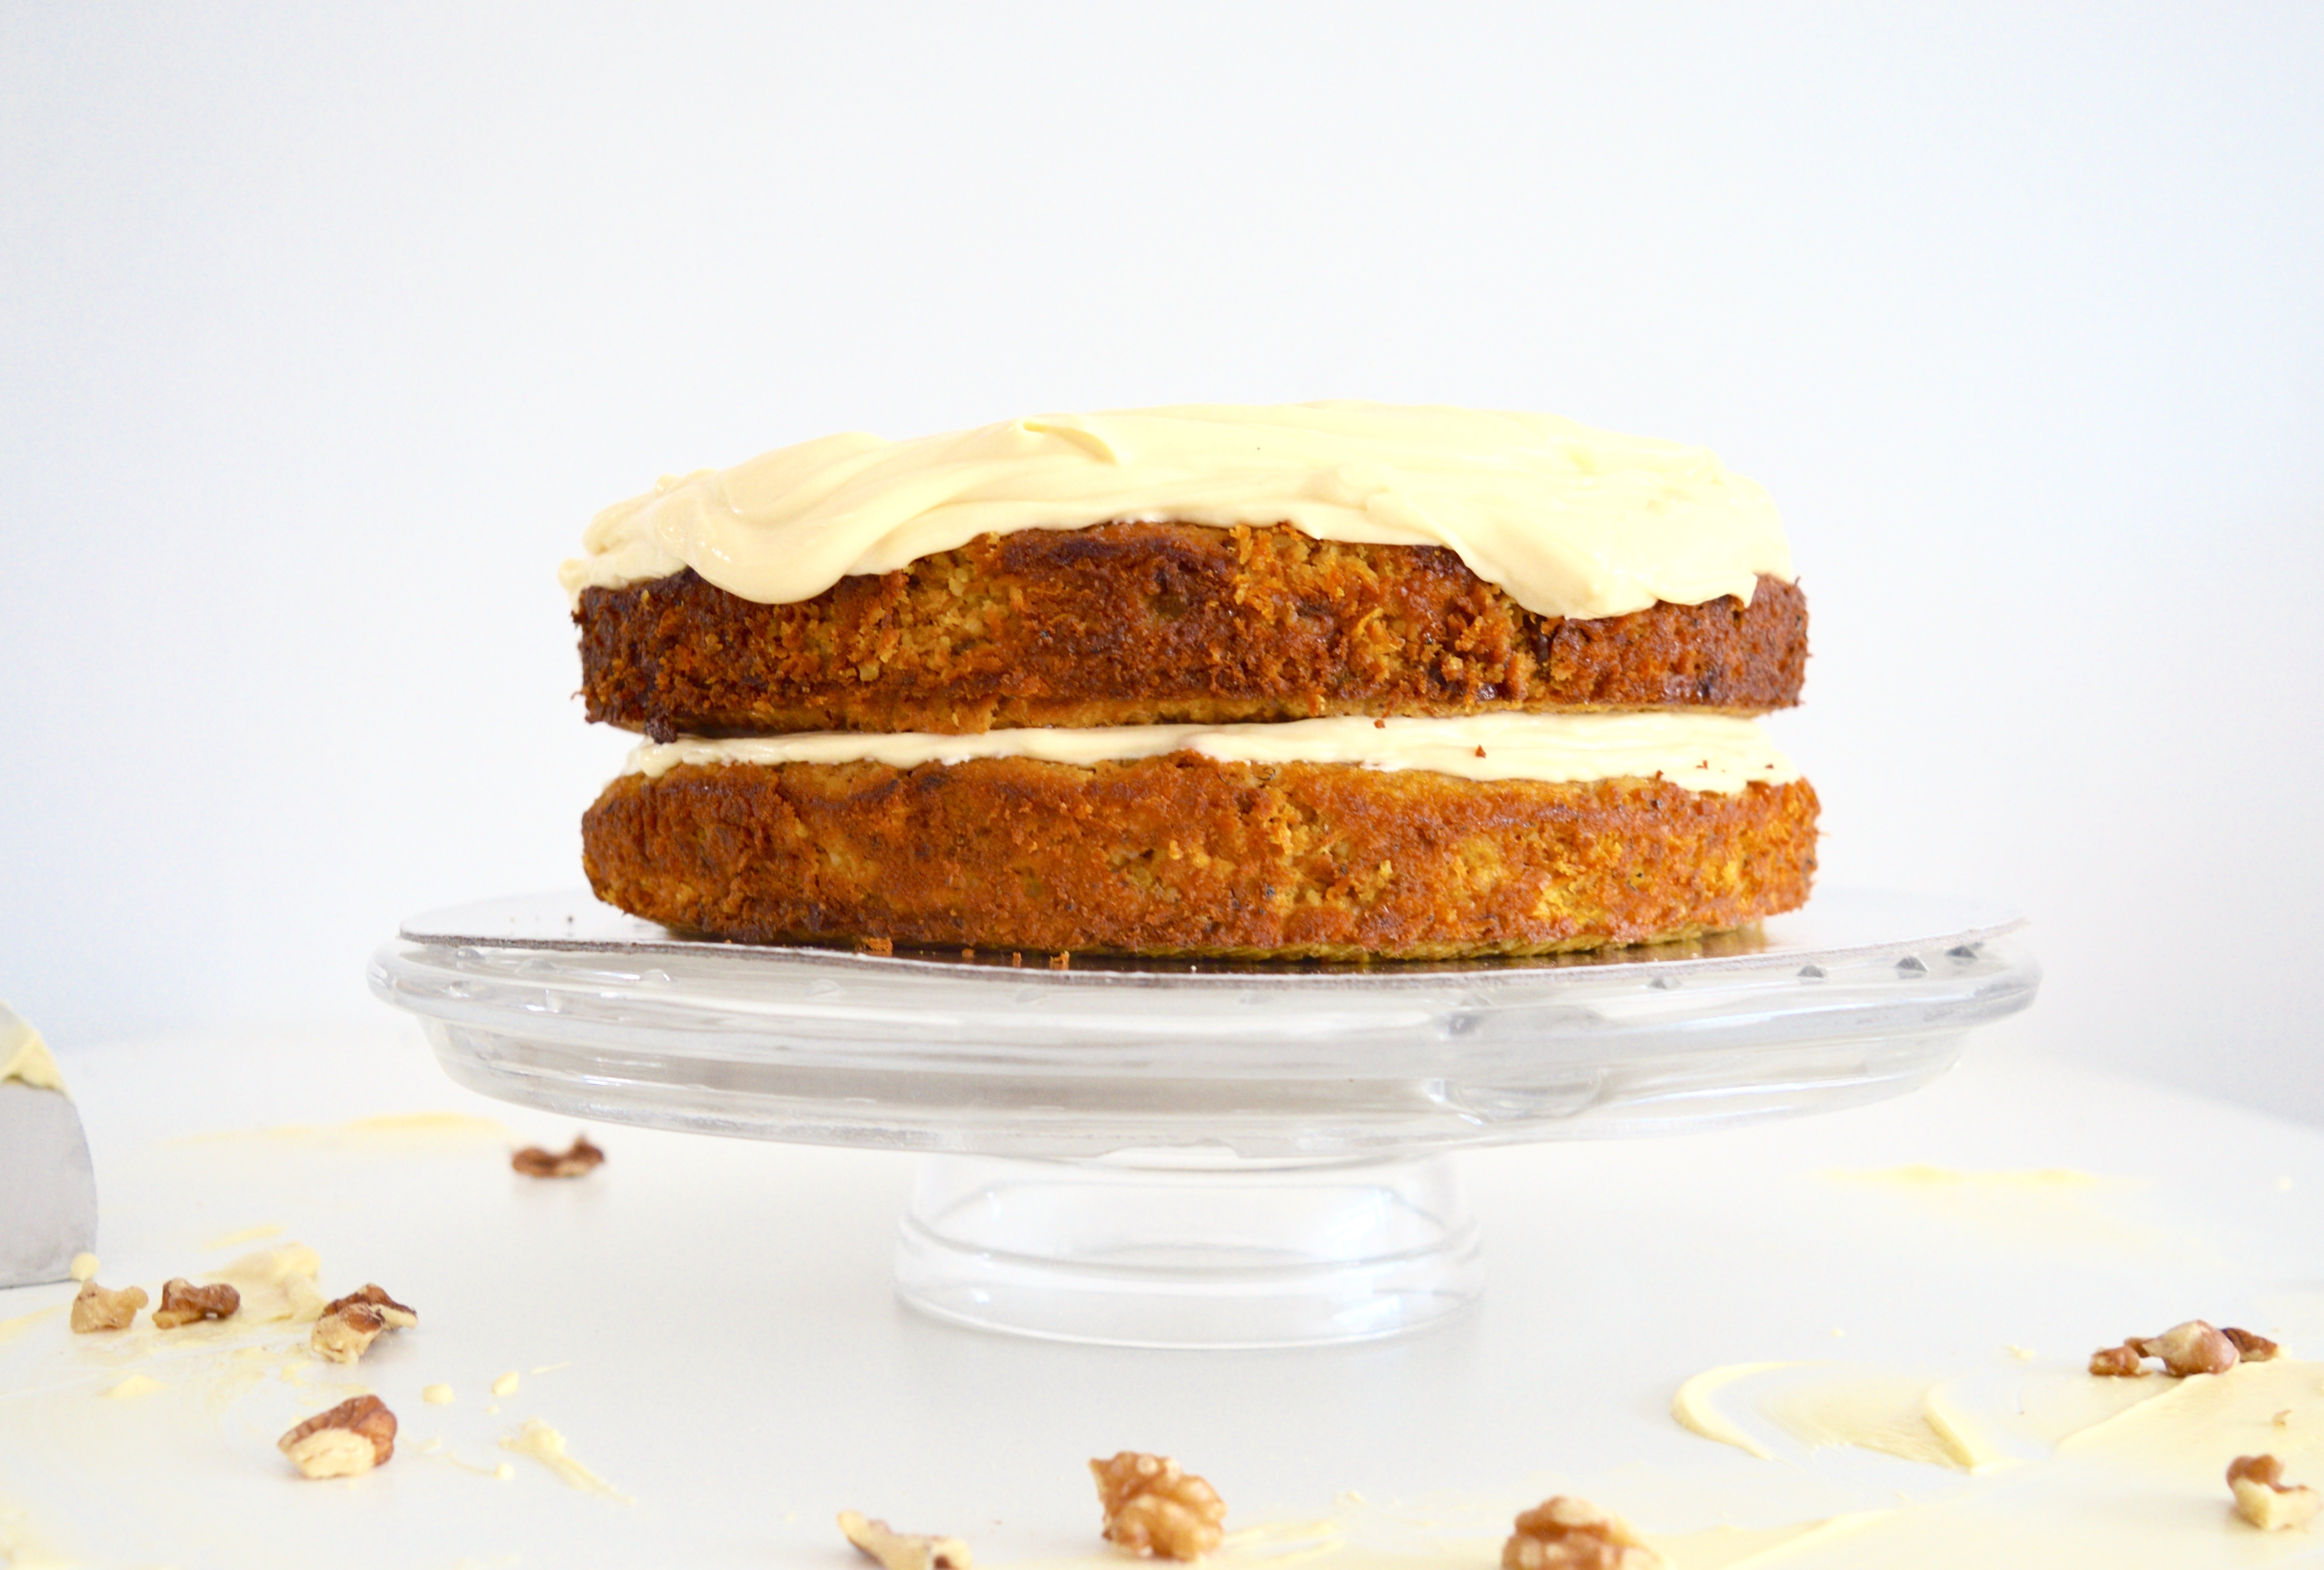 Easy To Make South African Carrot Cake